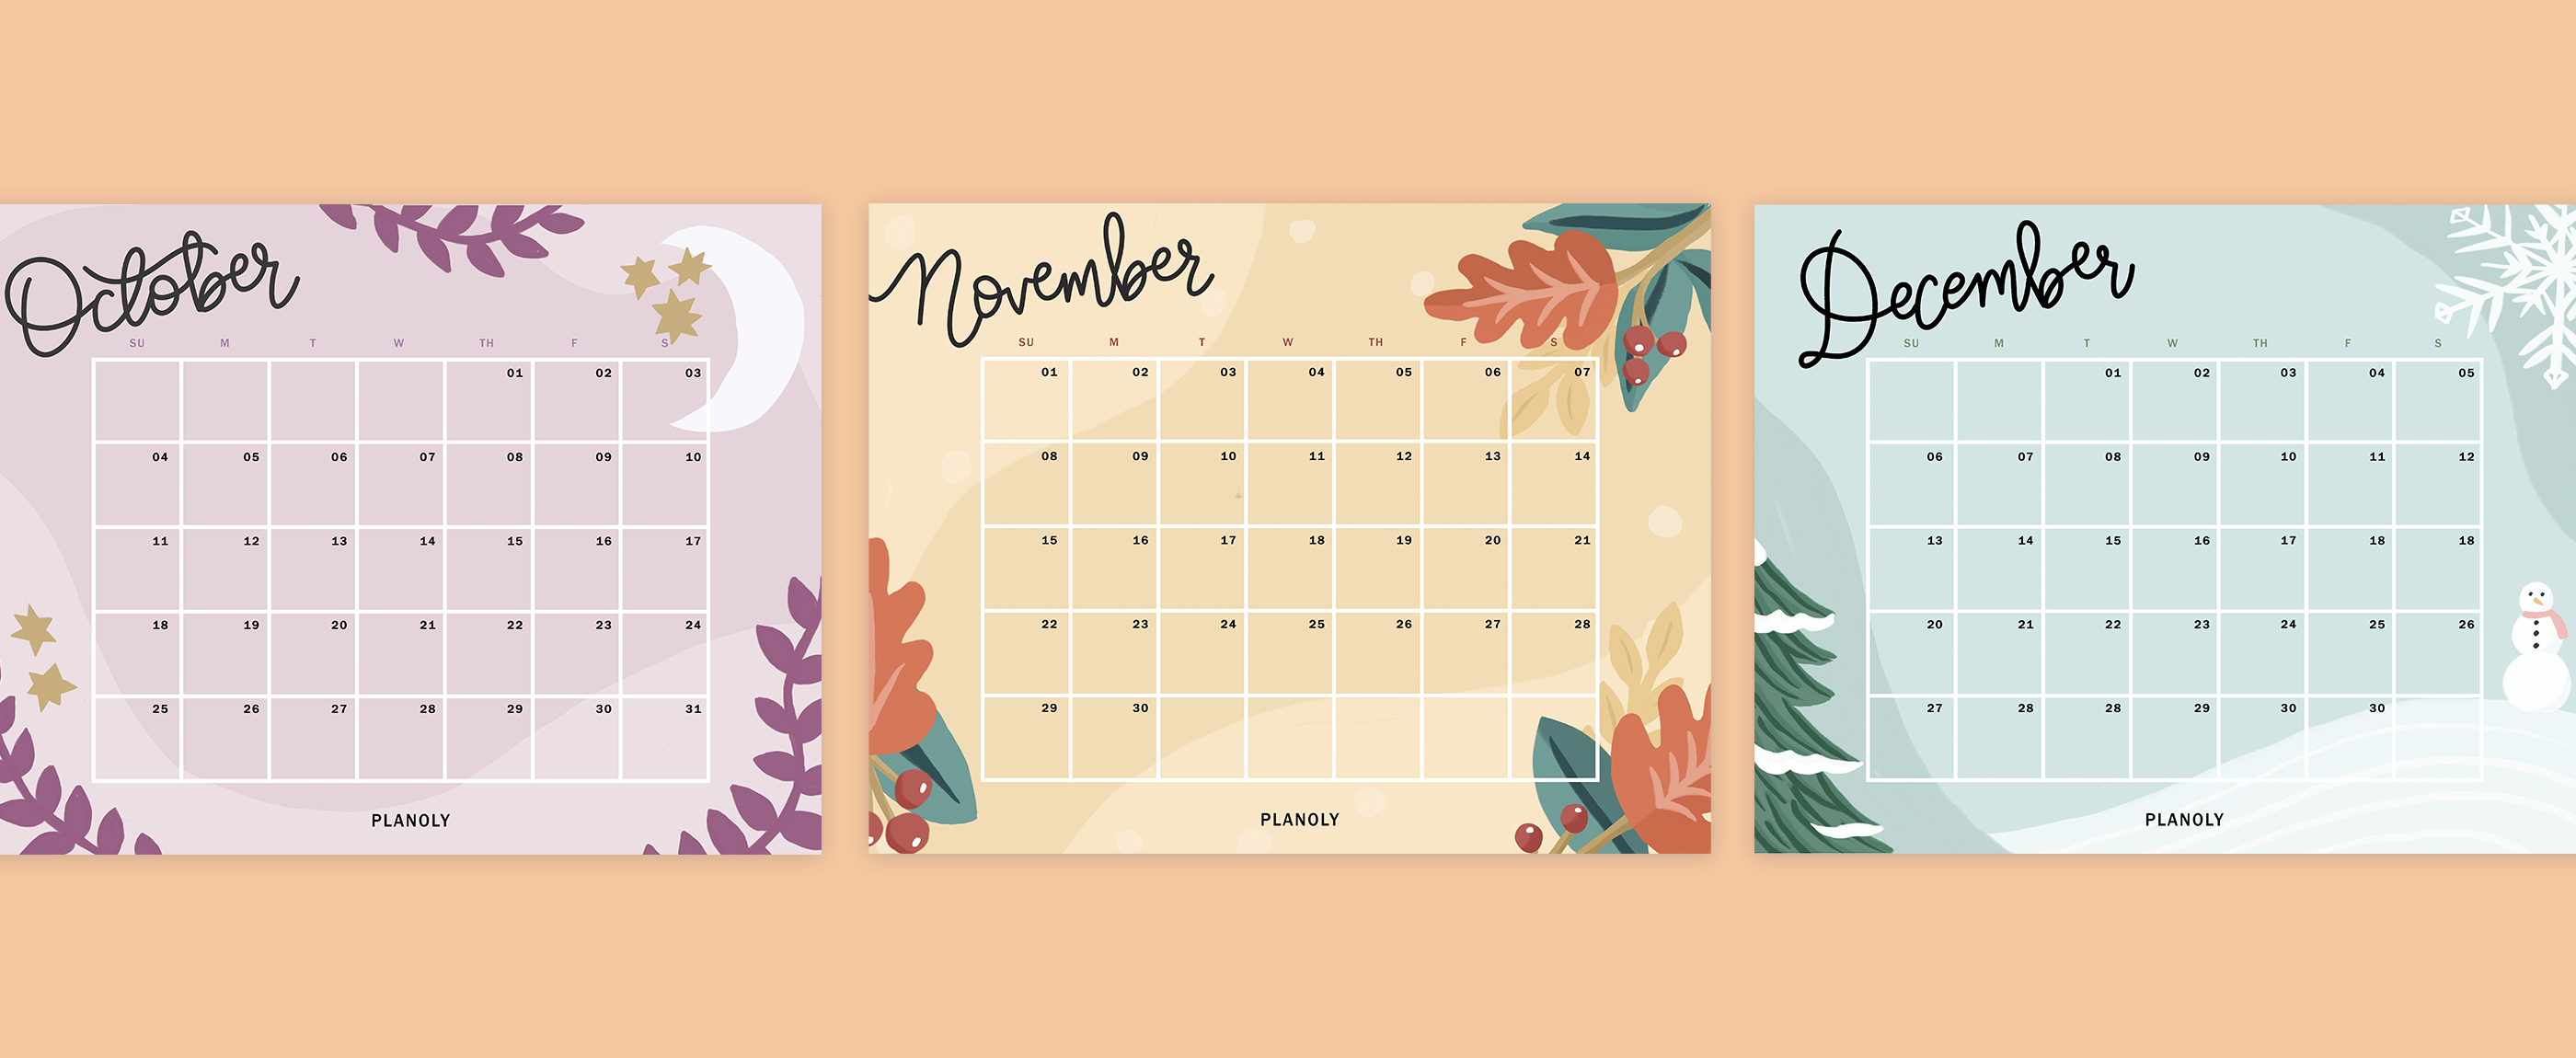 PLANOLY-blog post- Q4 2020 Content Calendars - banner